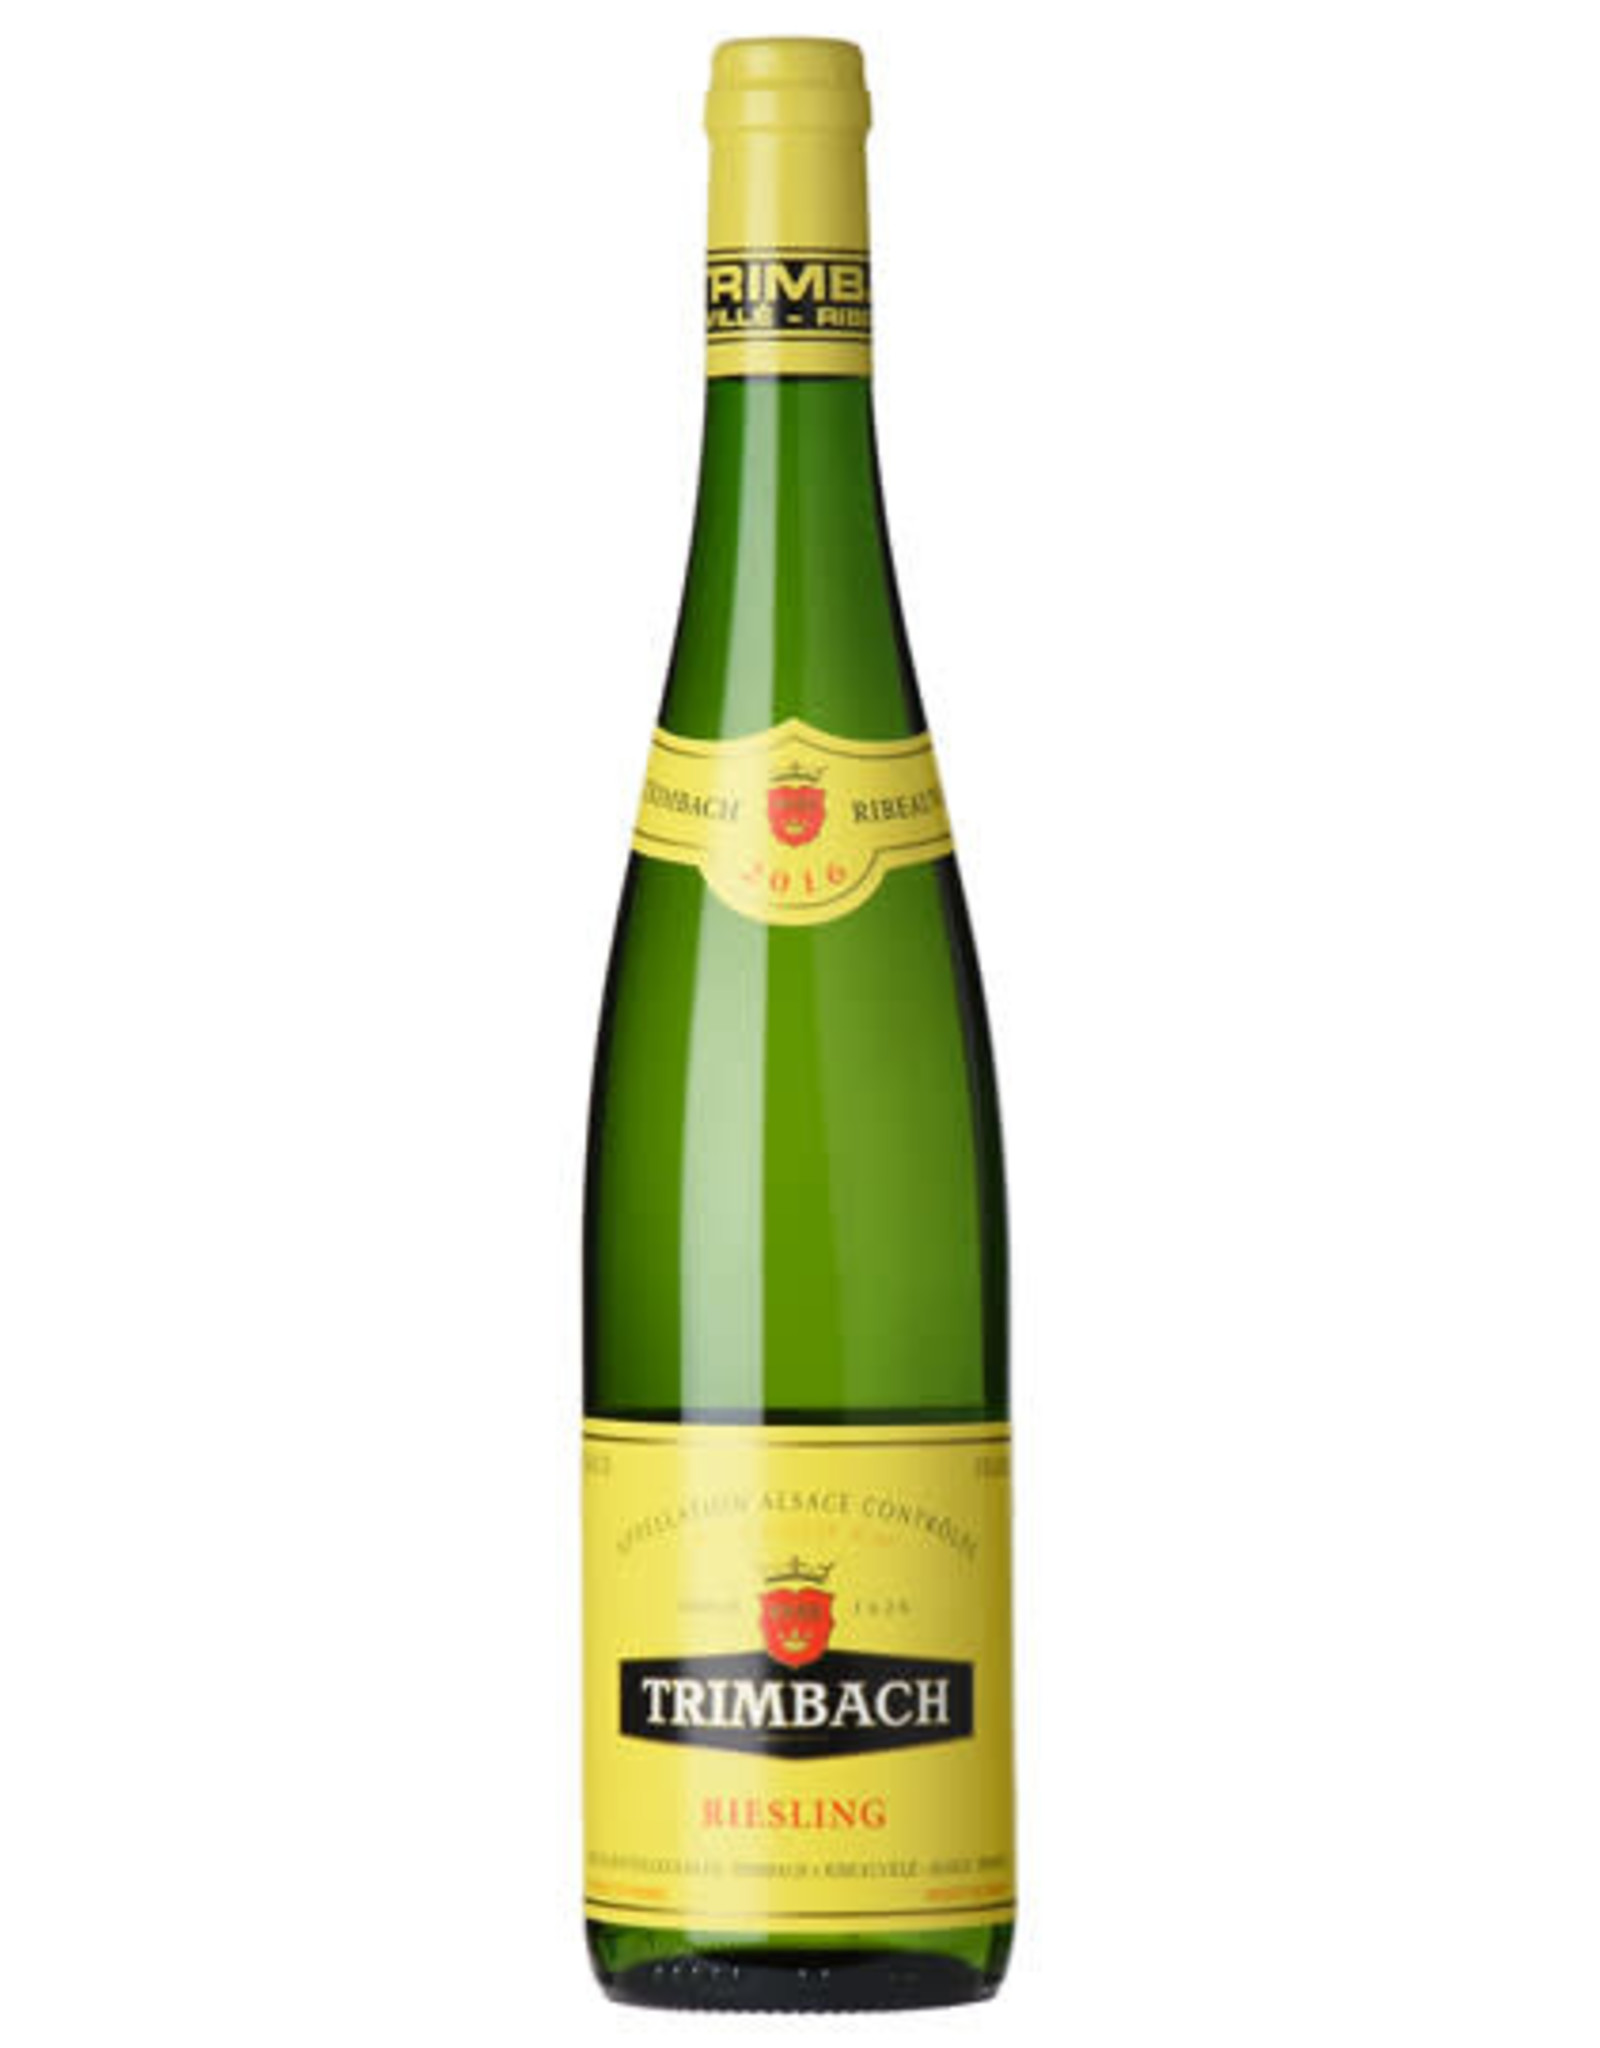 Trimbach Riesling 2018